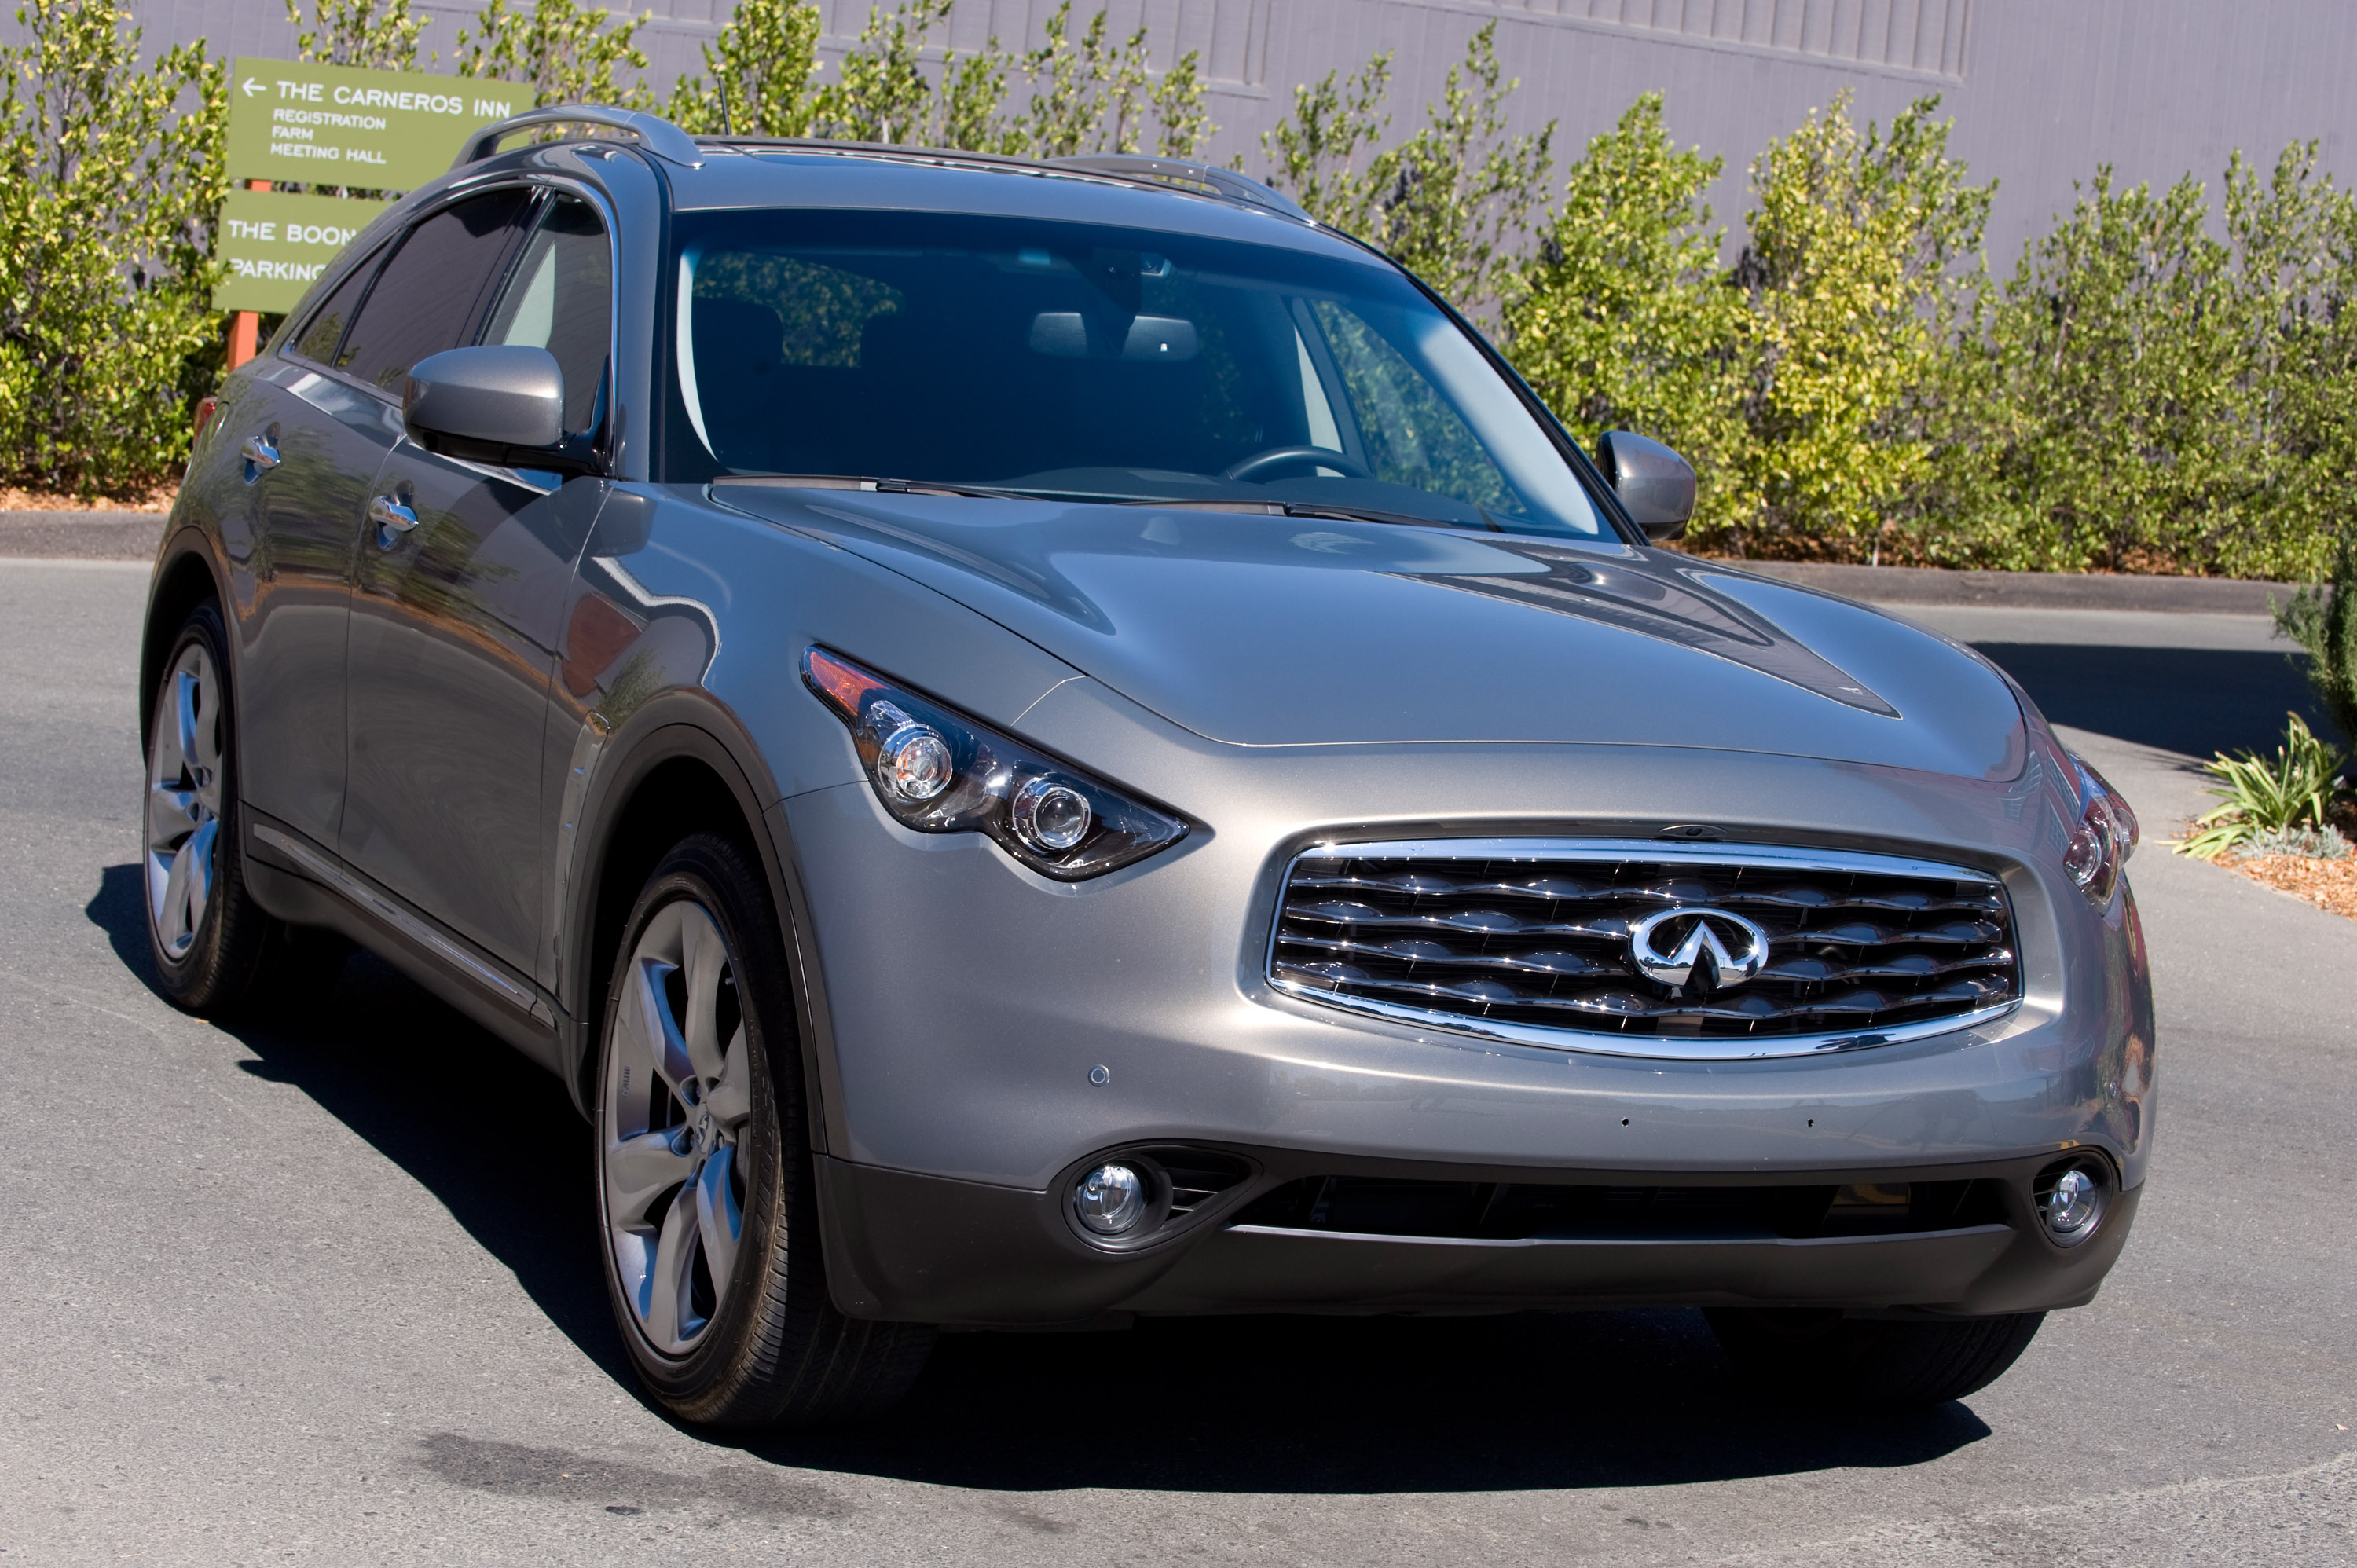 2010 infiniti fx pricing announced 2010 infiniti fx vanachro Image collections